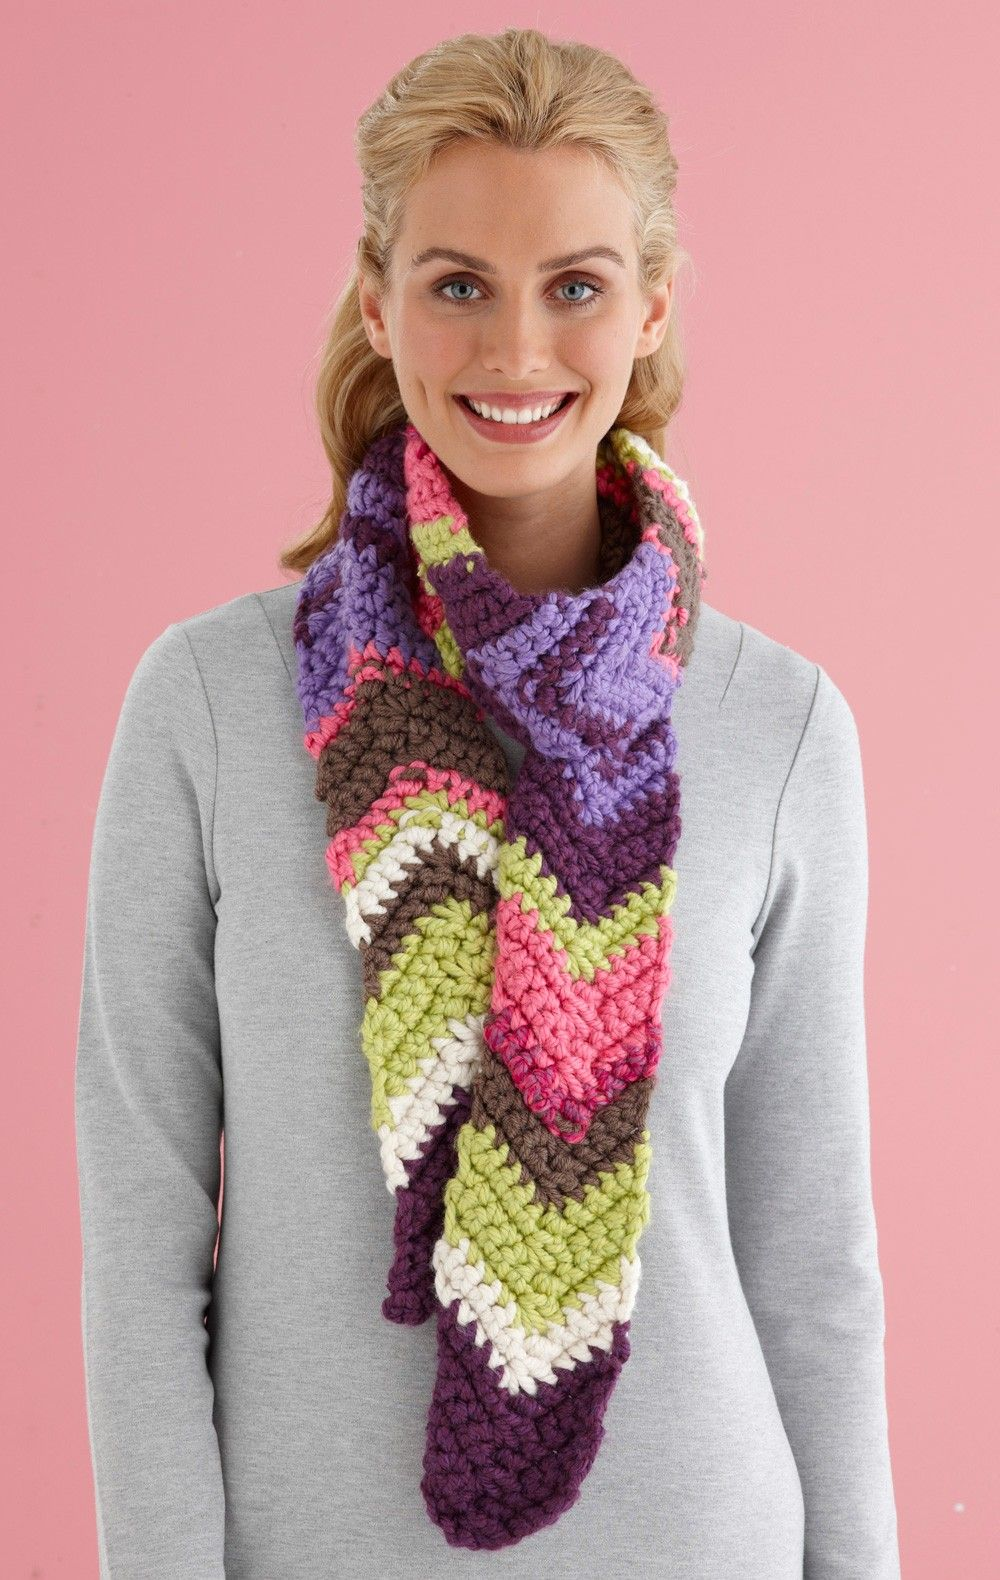 Confetti Ripple Scarf (Crochet) | Crochet clothing | Pinterest